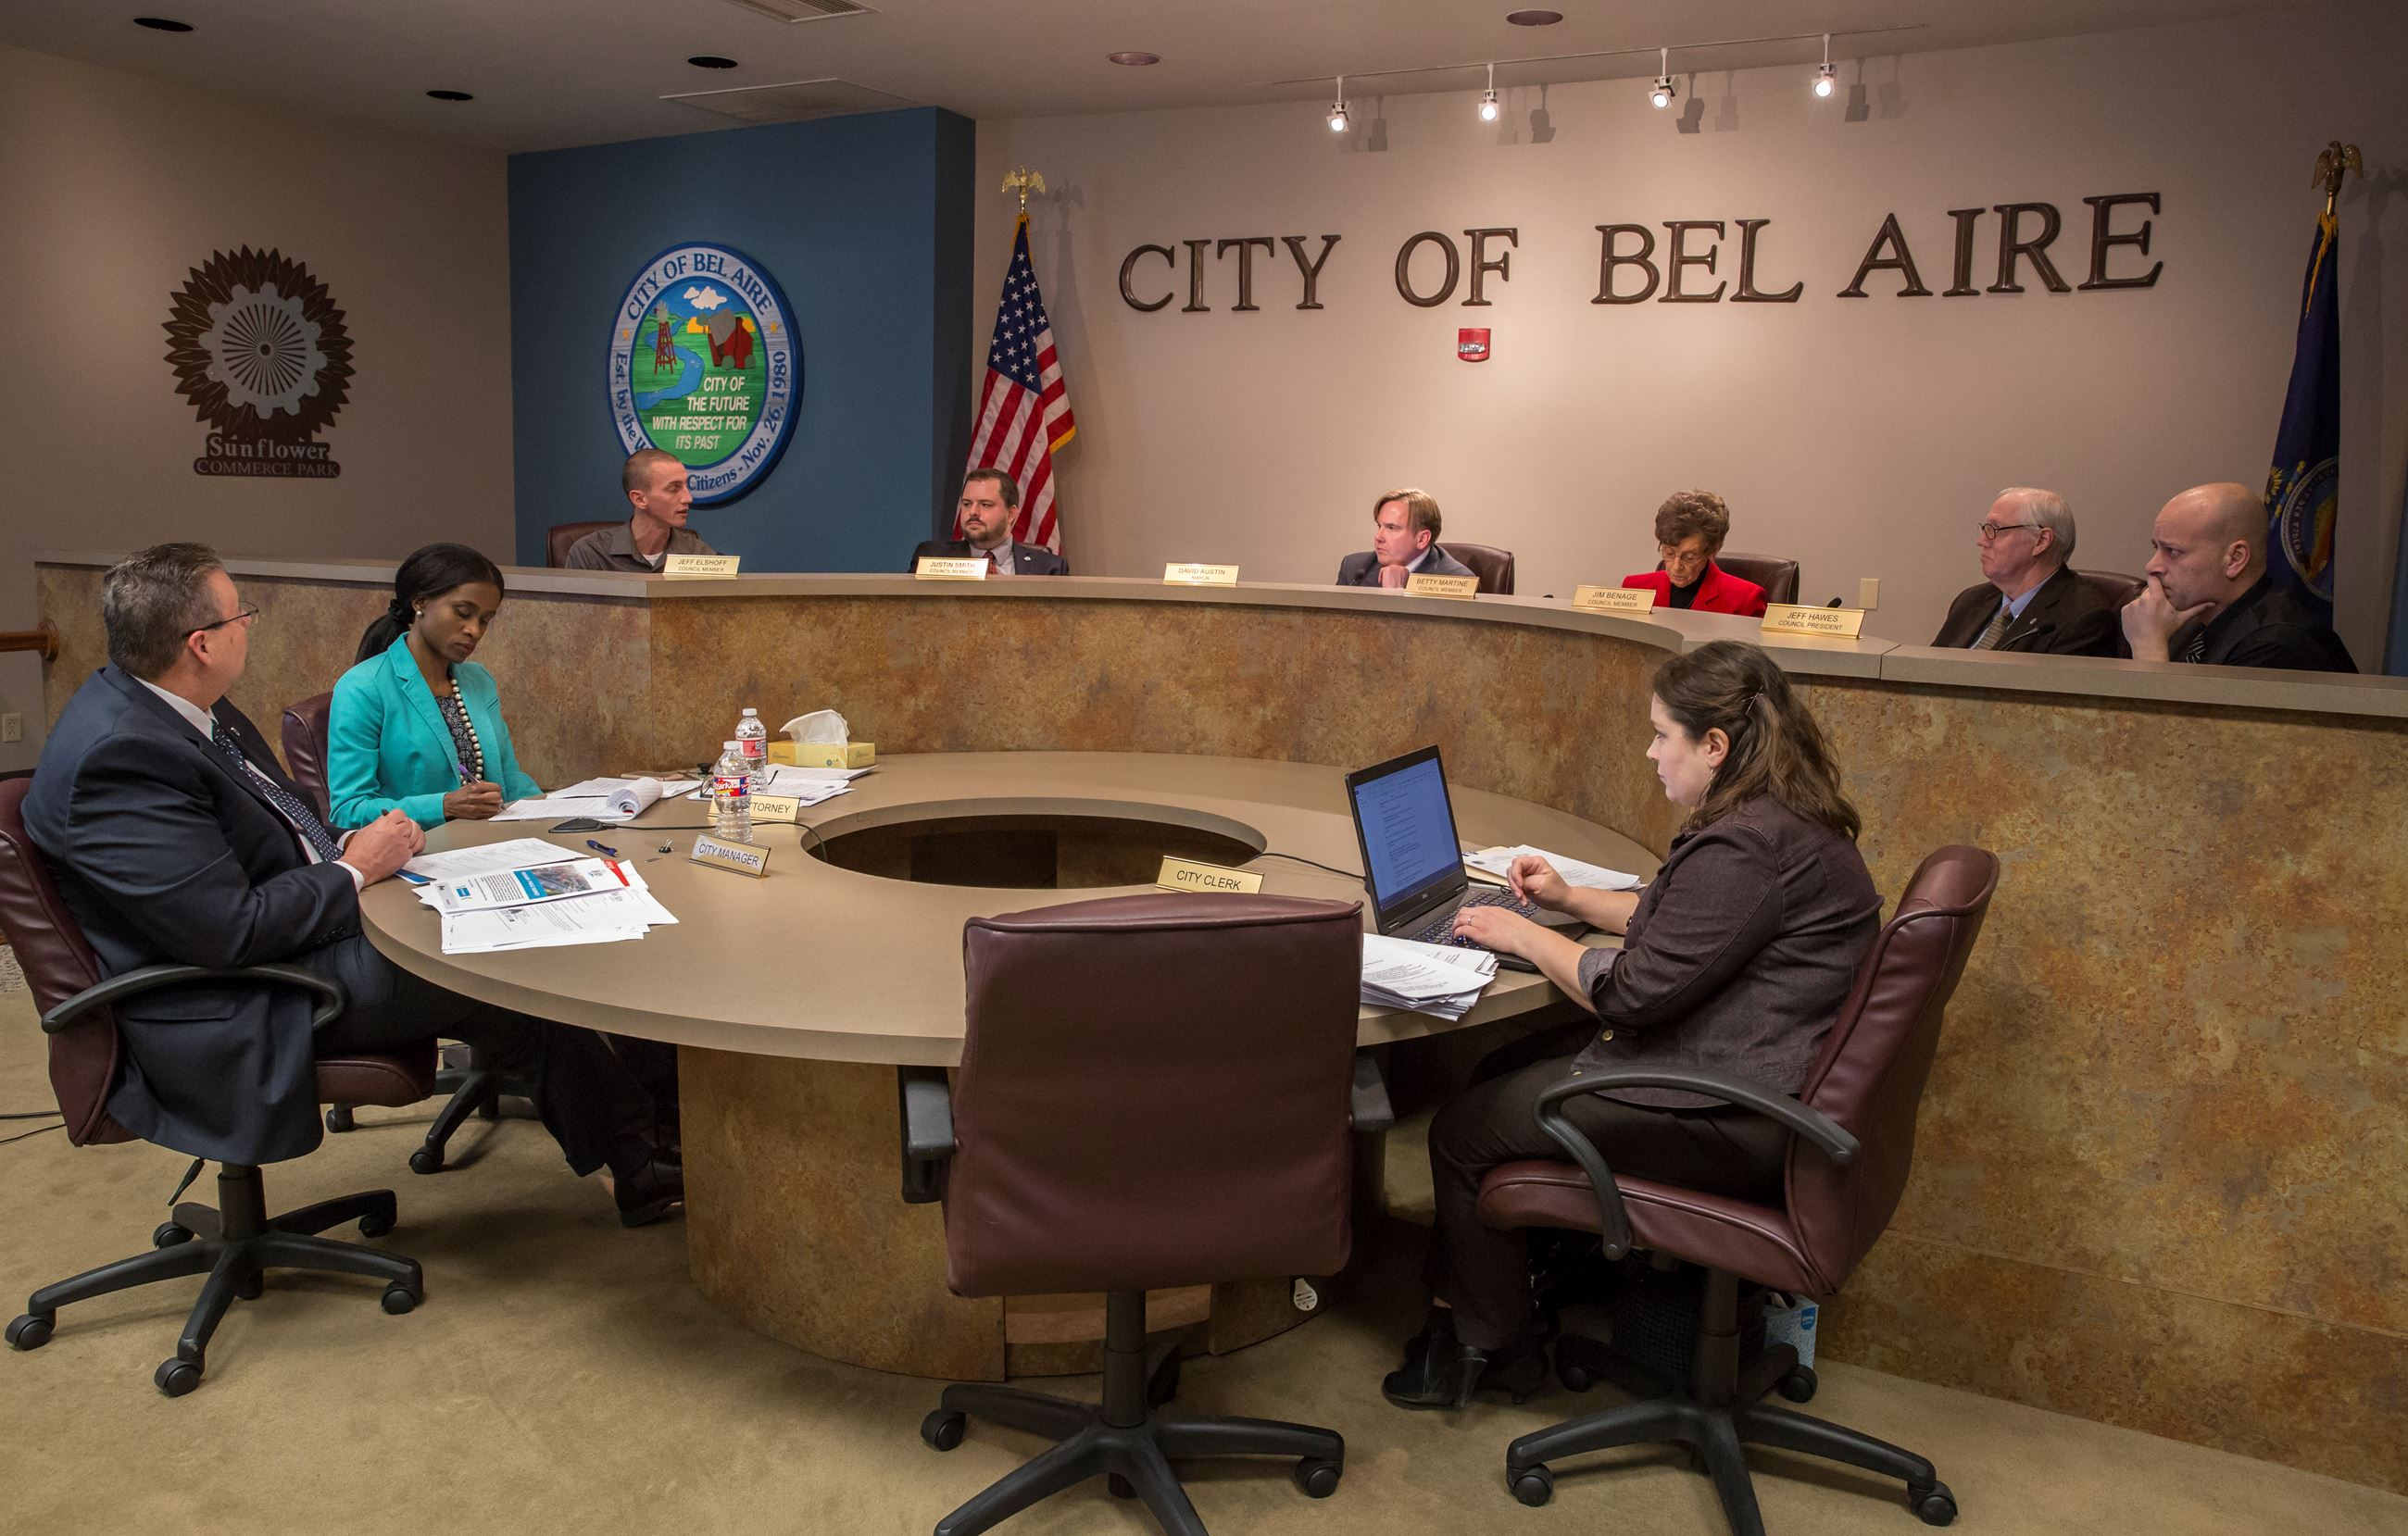 Council Meeting - About Us